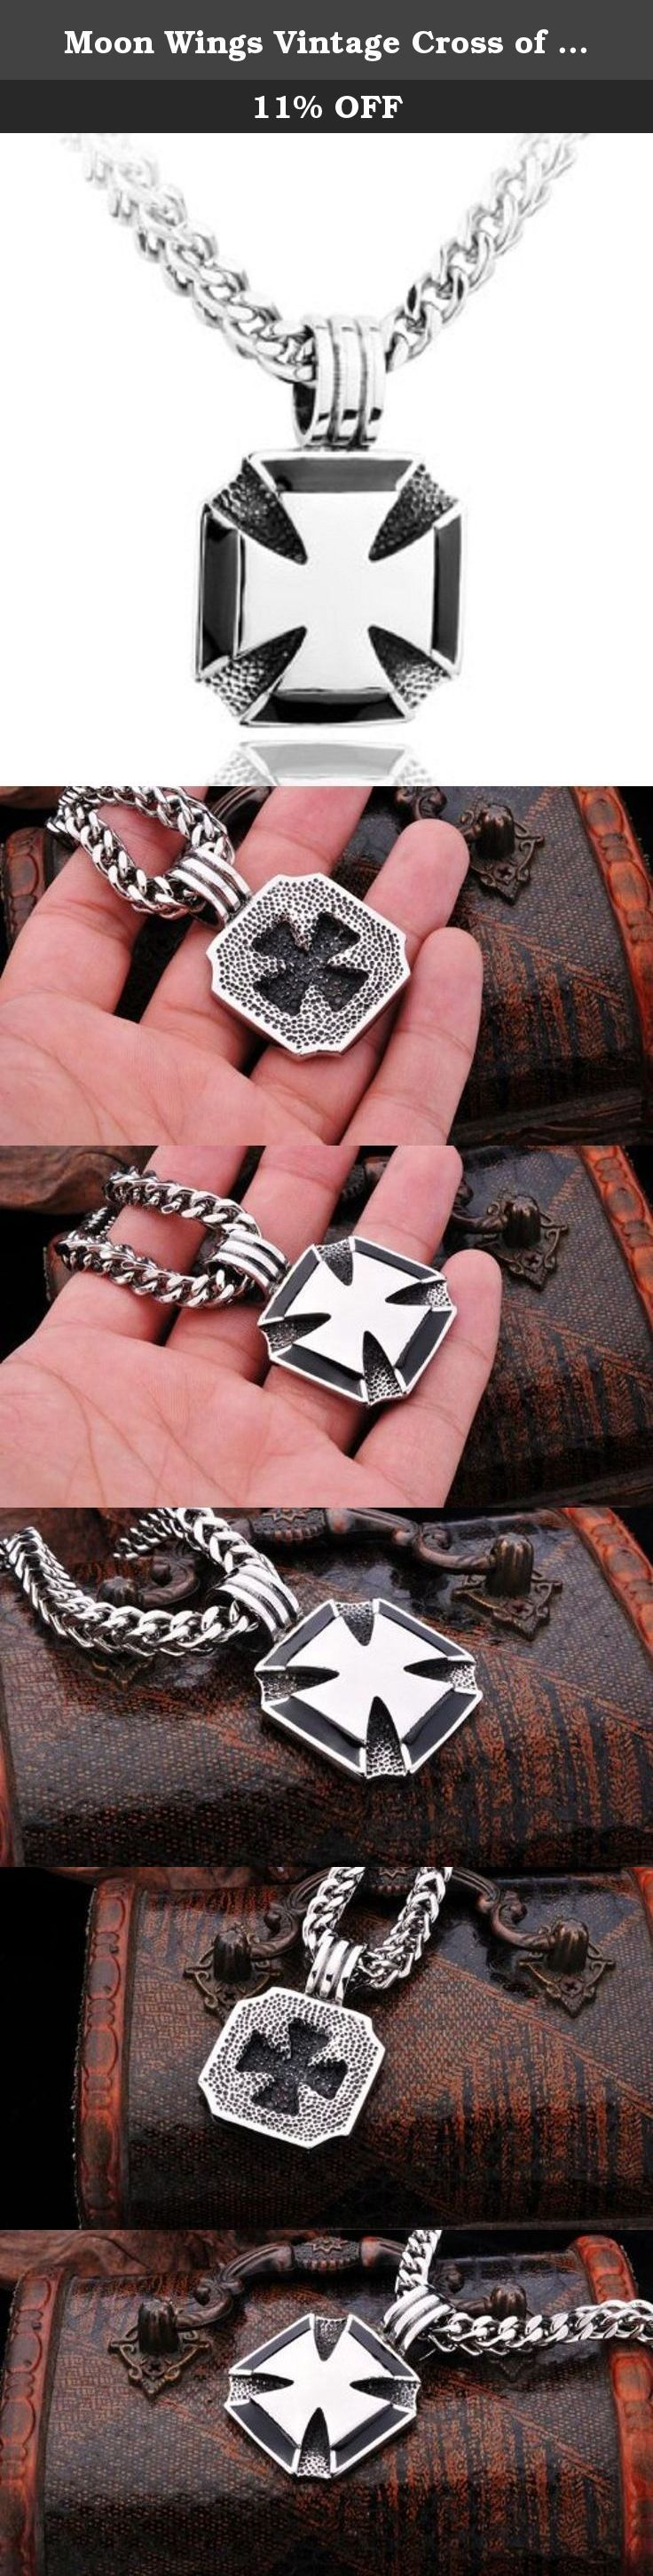 Moon Wings Vintage Cross of Iron Stainless Steel Men's Pendant with Necklace. This is a solid Pendant; Pendant Size: 47MM X 32MM; Necklace Length 60CM or 23.6 inches: Free Luxury jewelry box will be provided.